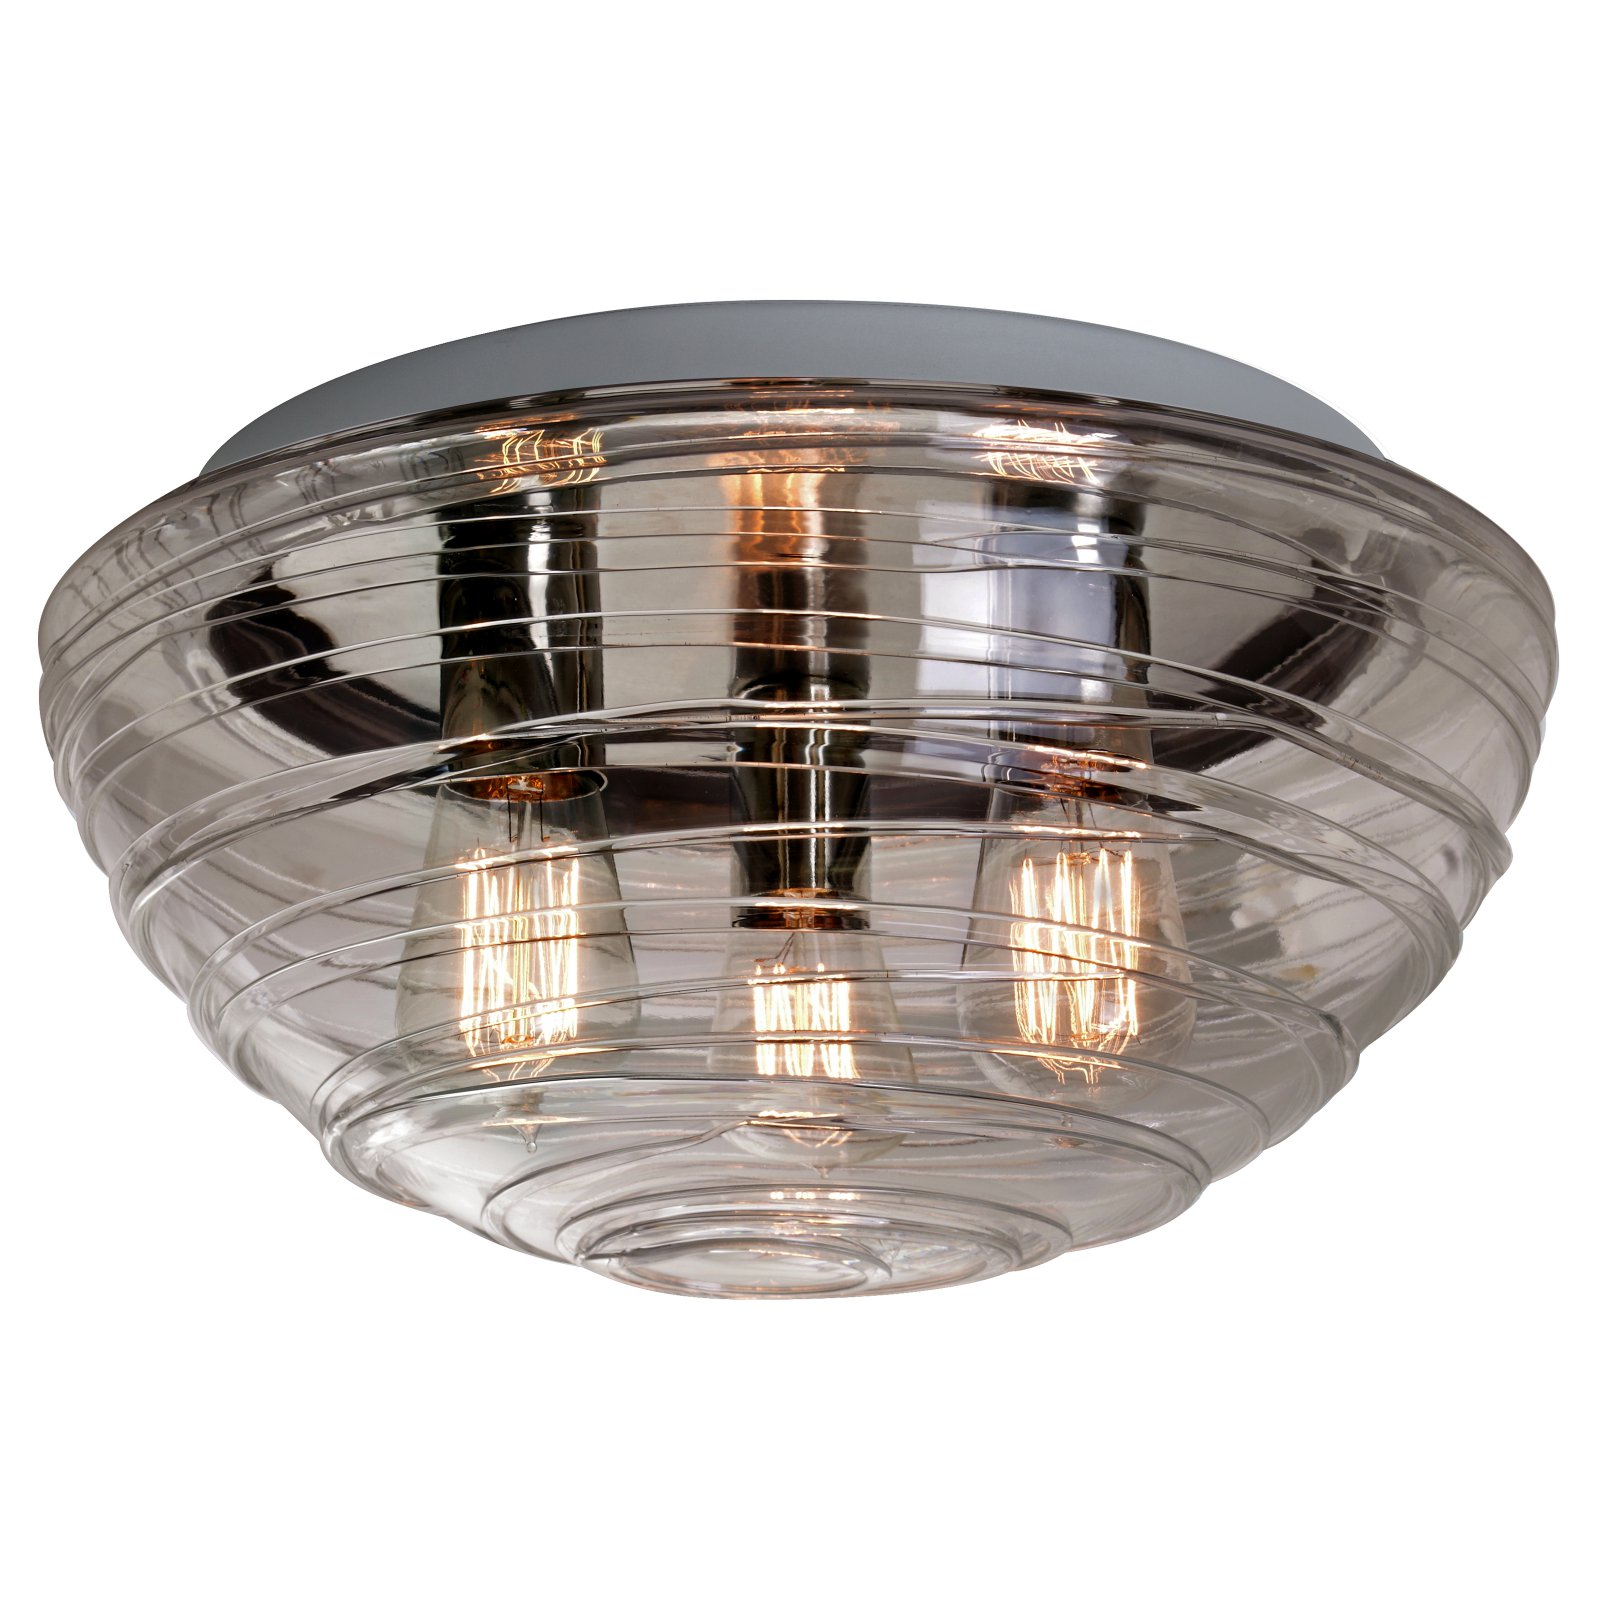 Besa Wave 15 Ceiling Flush Mount Light with Smoke Glass